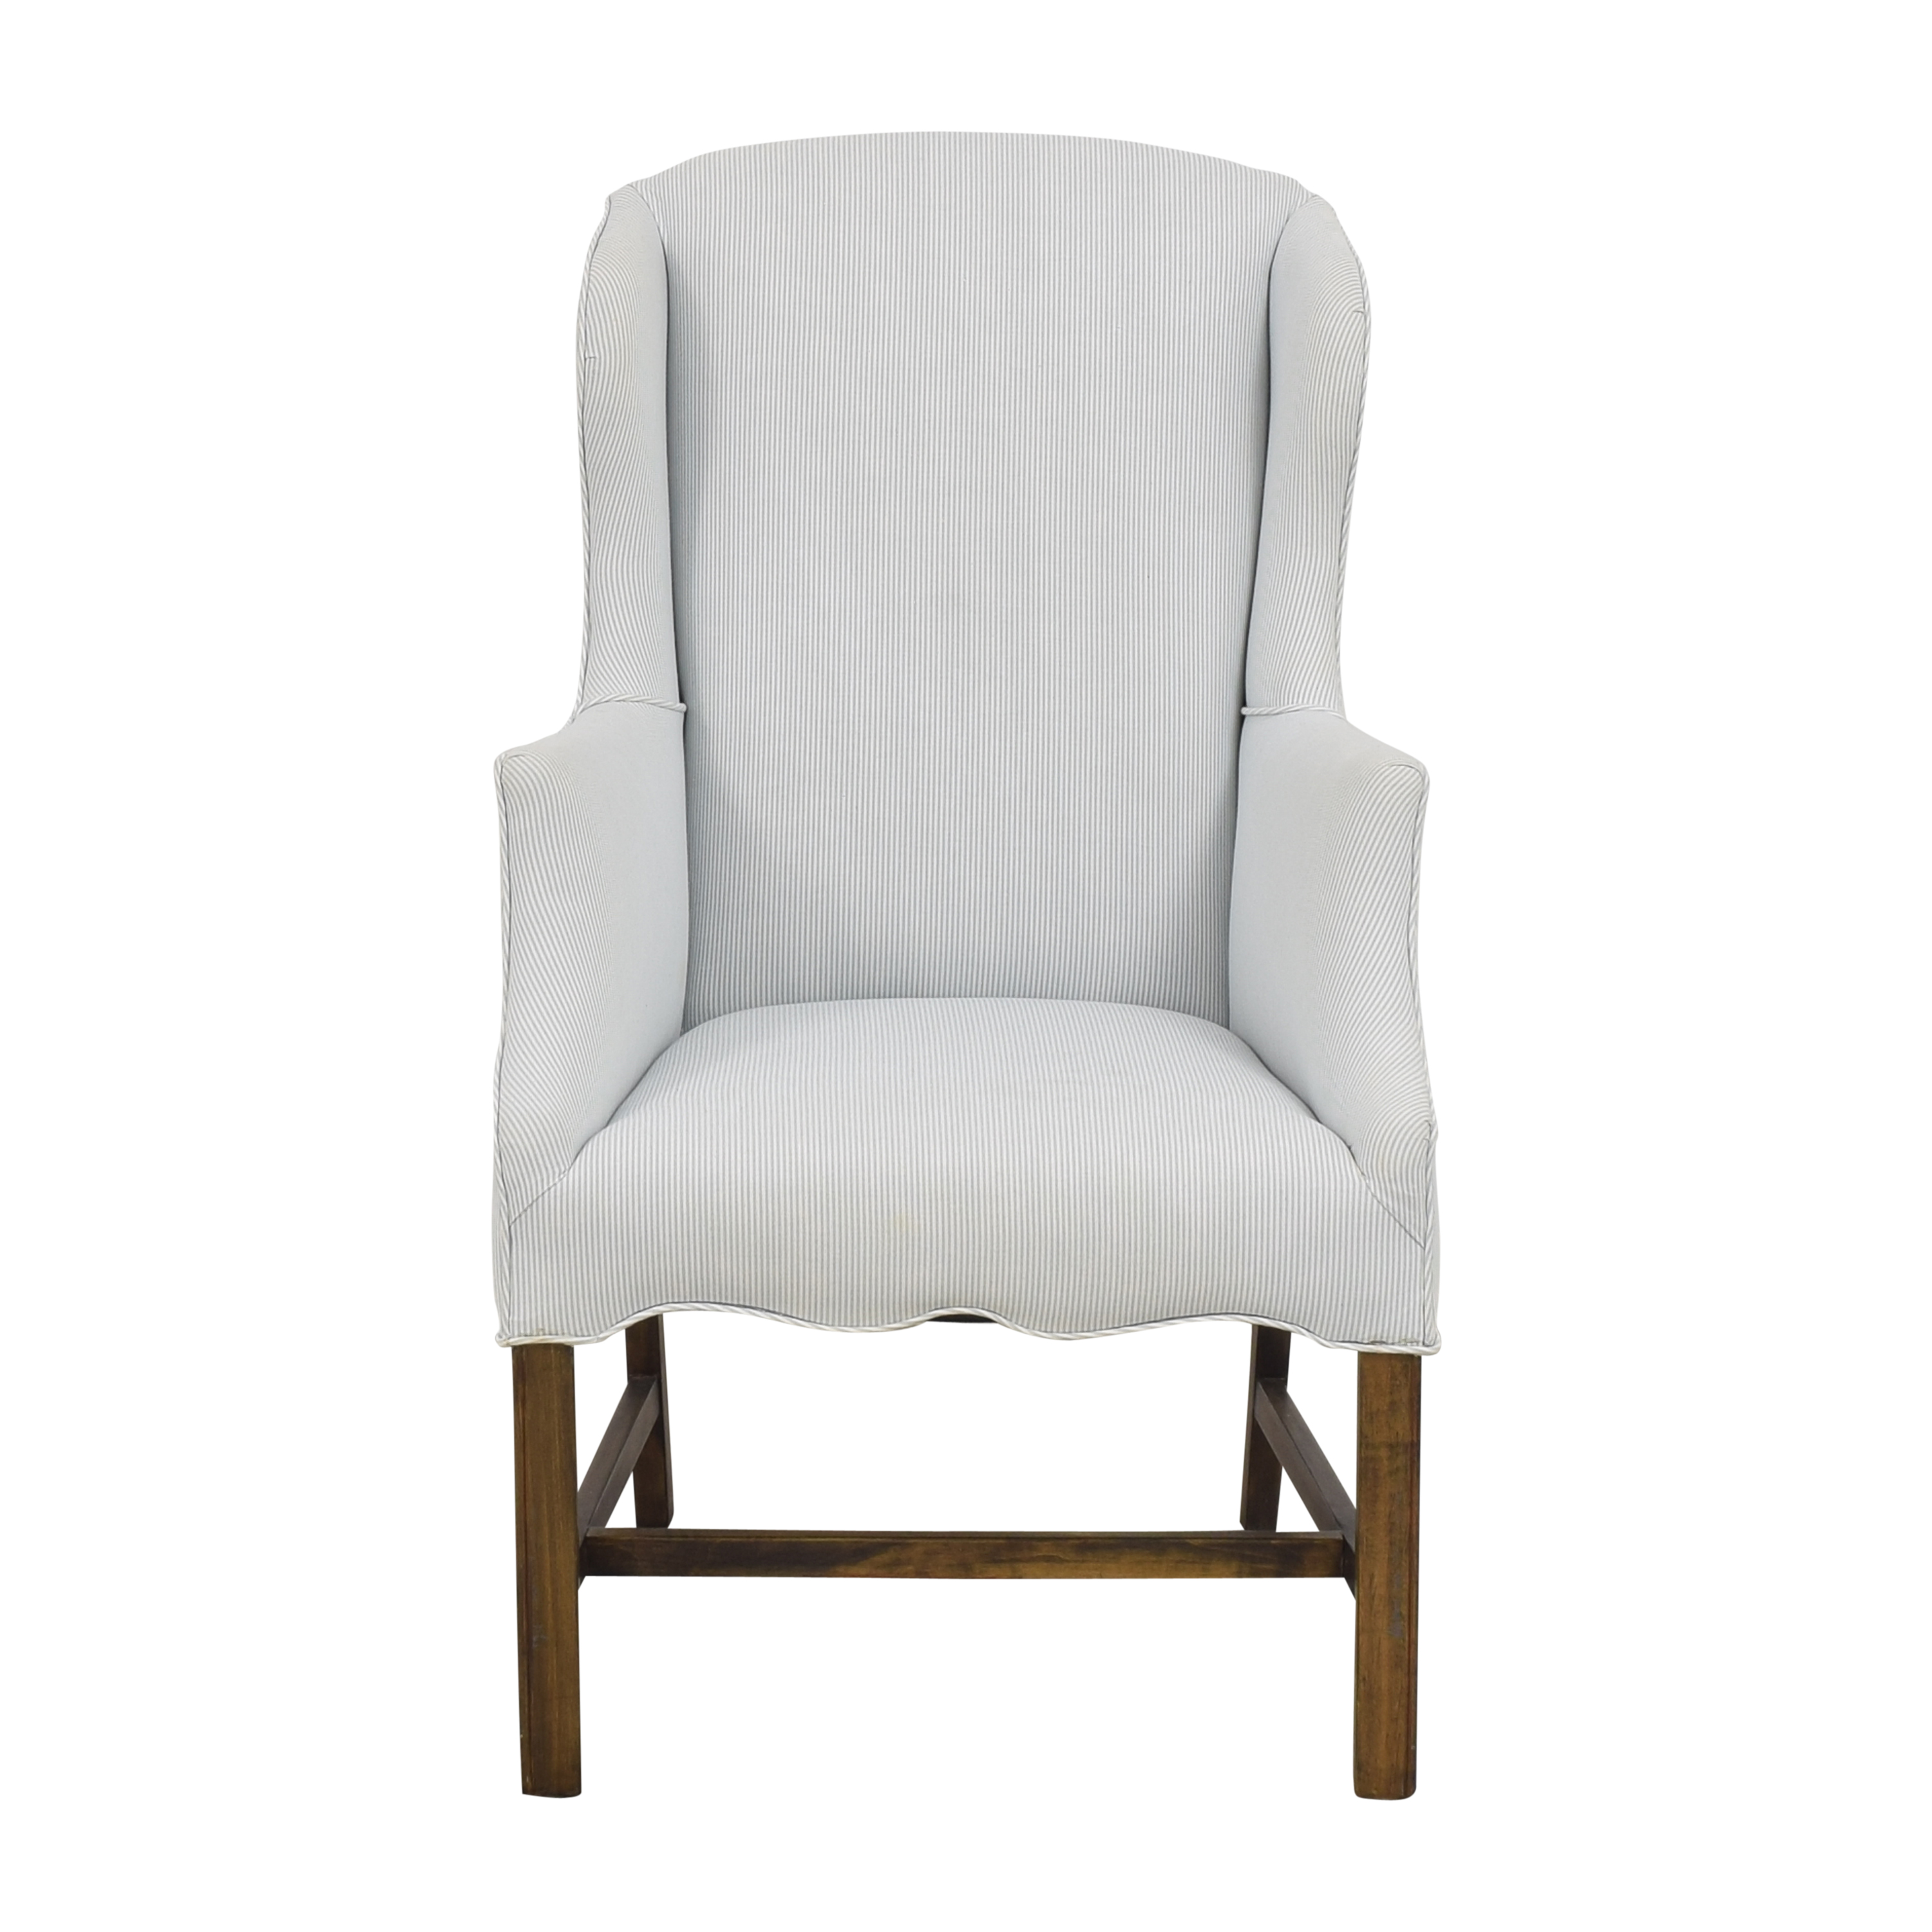 Striped Wingback Accent Chair light blue and white